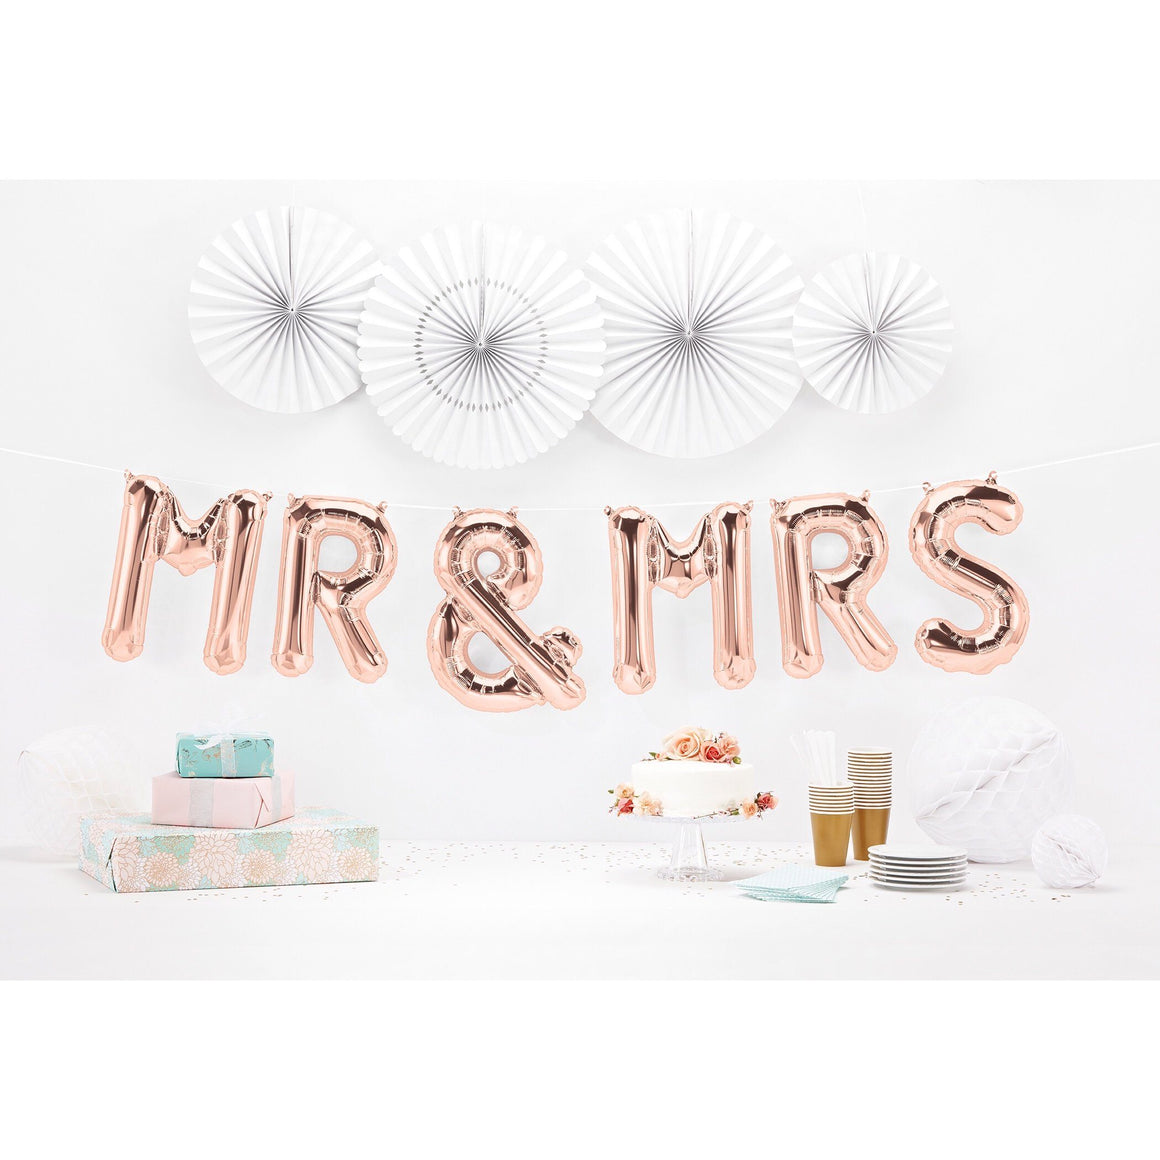 BALLOON BANNER - MR & MRS ROSE GOLD, Balloons, Northstar - Bon + Co. Party Studio